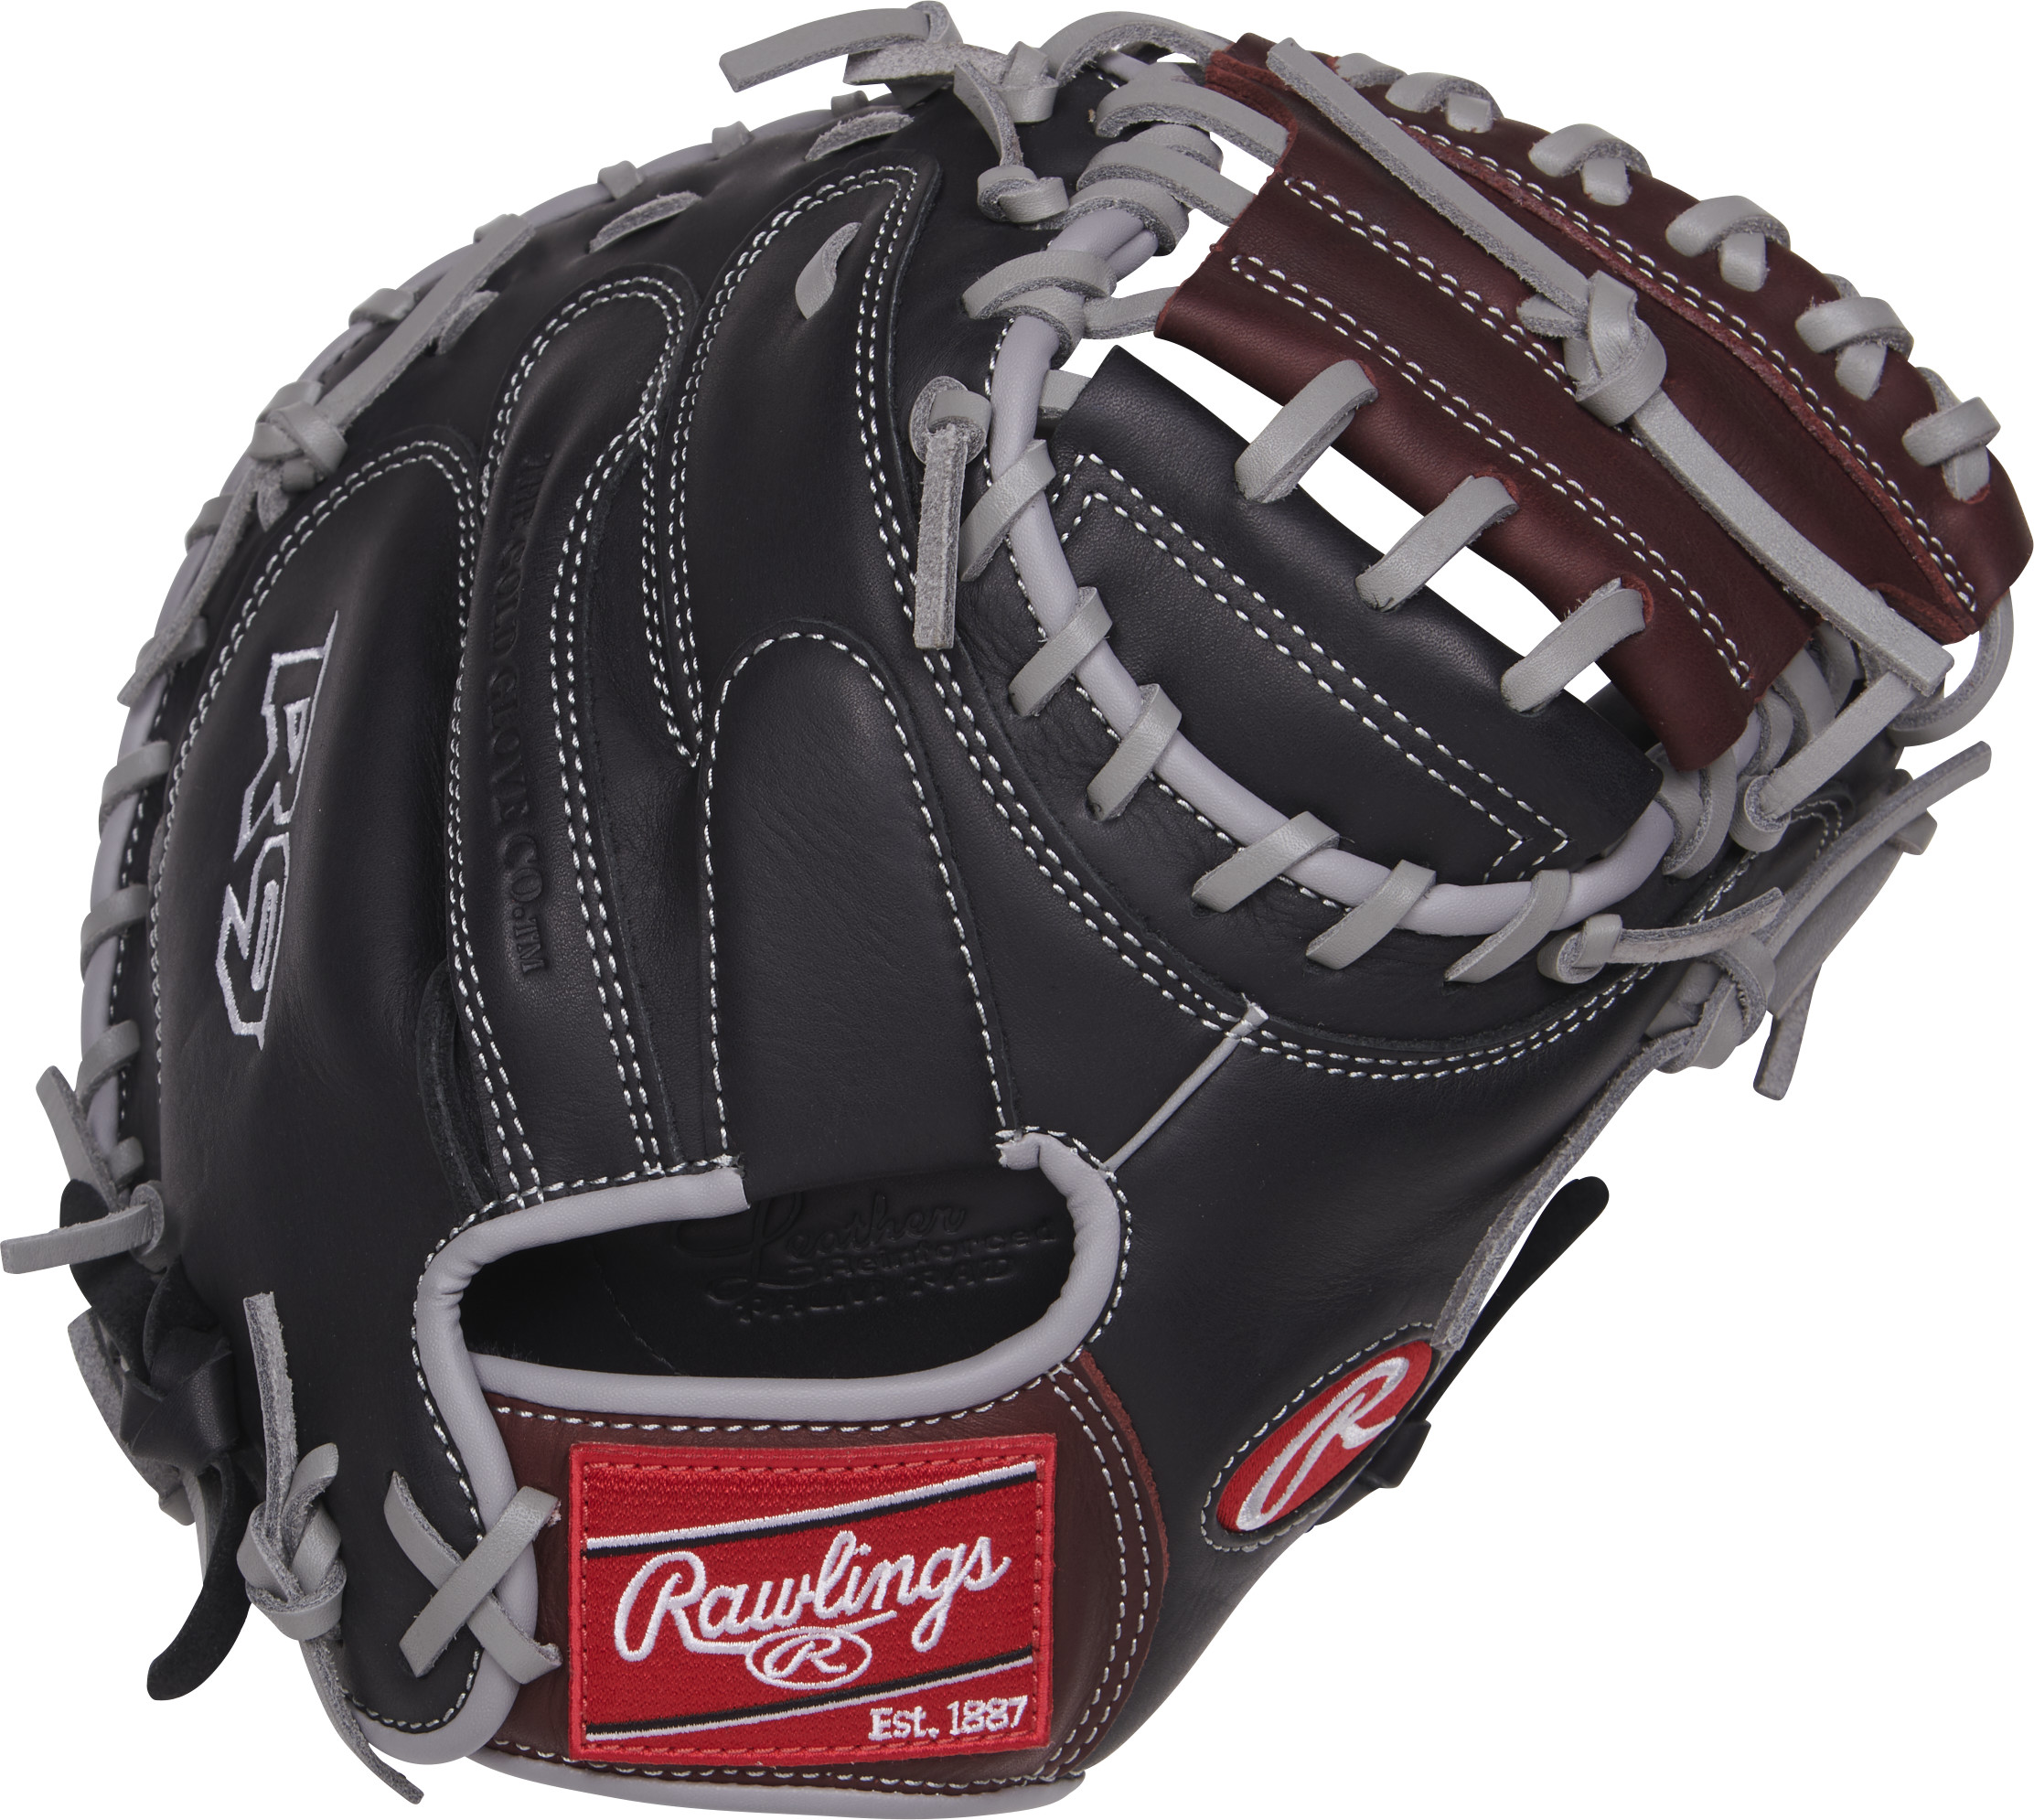 http://www.bestbatdeals.com/images/gloves/rawlings/R9CM325BSG-2.jpg